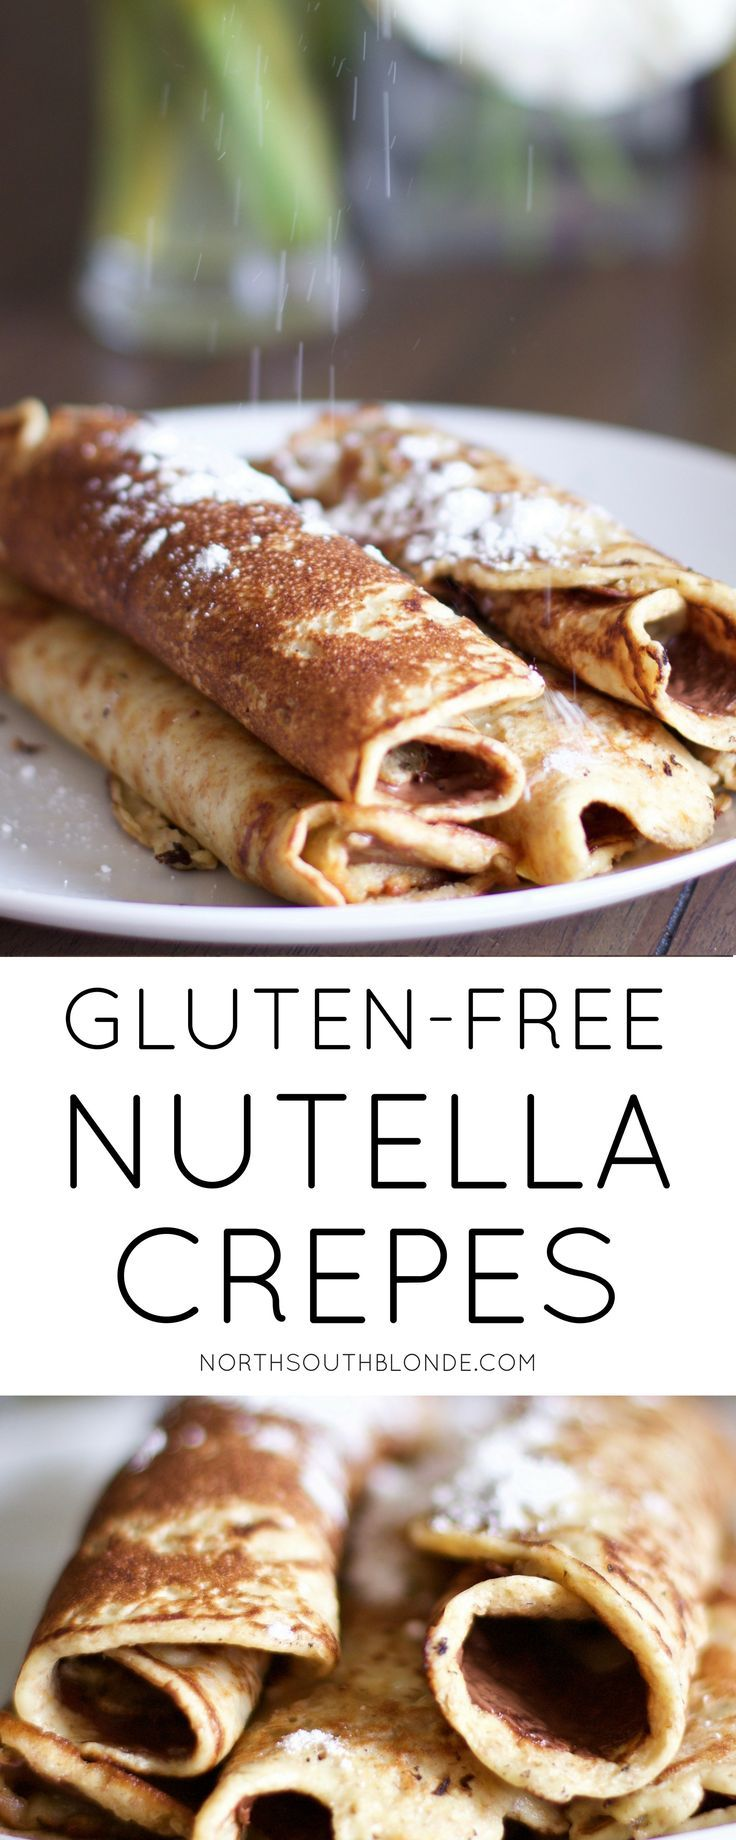 These warm, chocolatey, to-die-for Nutella Crepes are as sweet as it sounds! They're light, fluffy, and every chocolate lover's dream. Perfect for breakfast, dessert, holidays, and special occasions. Treat the mom in your life right this Mother's Day with this surprisingly easy & delicious treat. Gluten-free | Vegan | Paleo | Desserts | Easy Recipes | Chocolate | Nutella | Crepes | Breakfast | Healthy | Family-friendly | Kid friendly | Toddler Food | Baby Food | Food for Kids | N